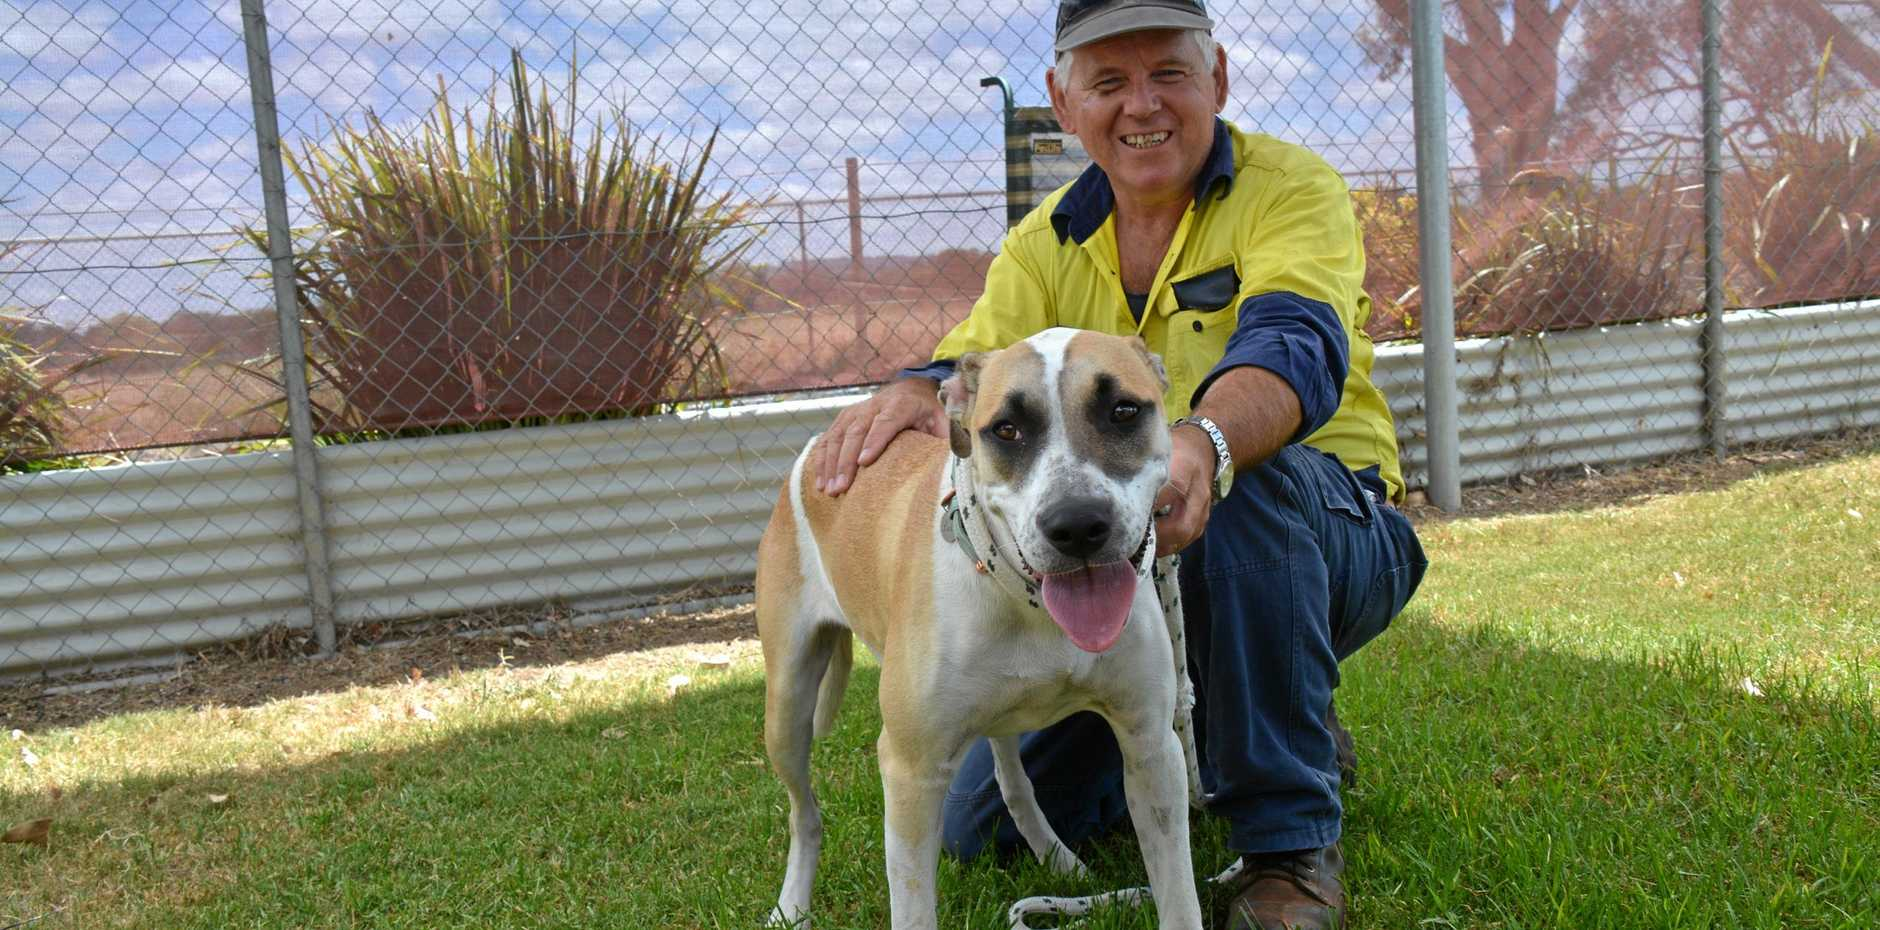 ADOPTION: Kingaroy RSPCA volunteer Shayne Young plays with six-month-old Bull Arab mix Ella while she waits for her forever family.